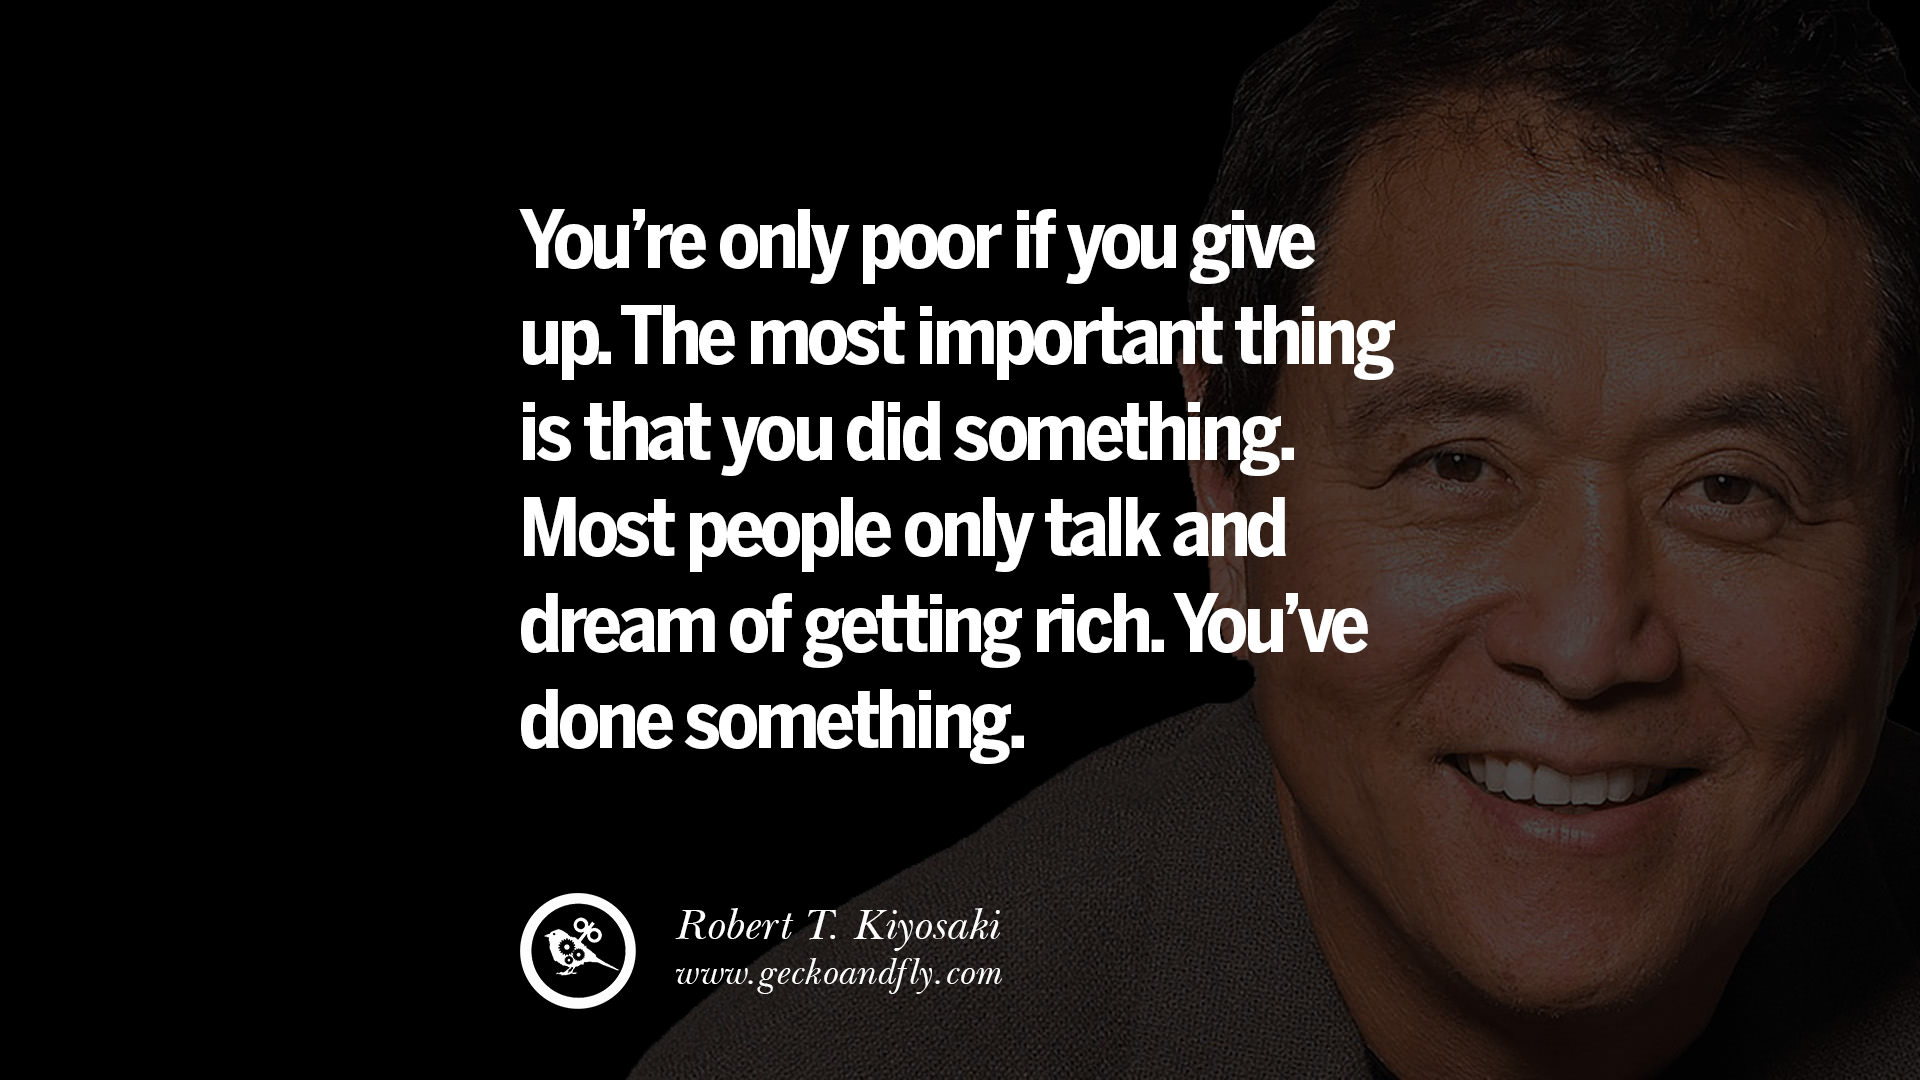 Give to The Poor Quotes You're Only Poor if You Give